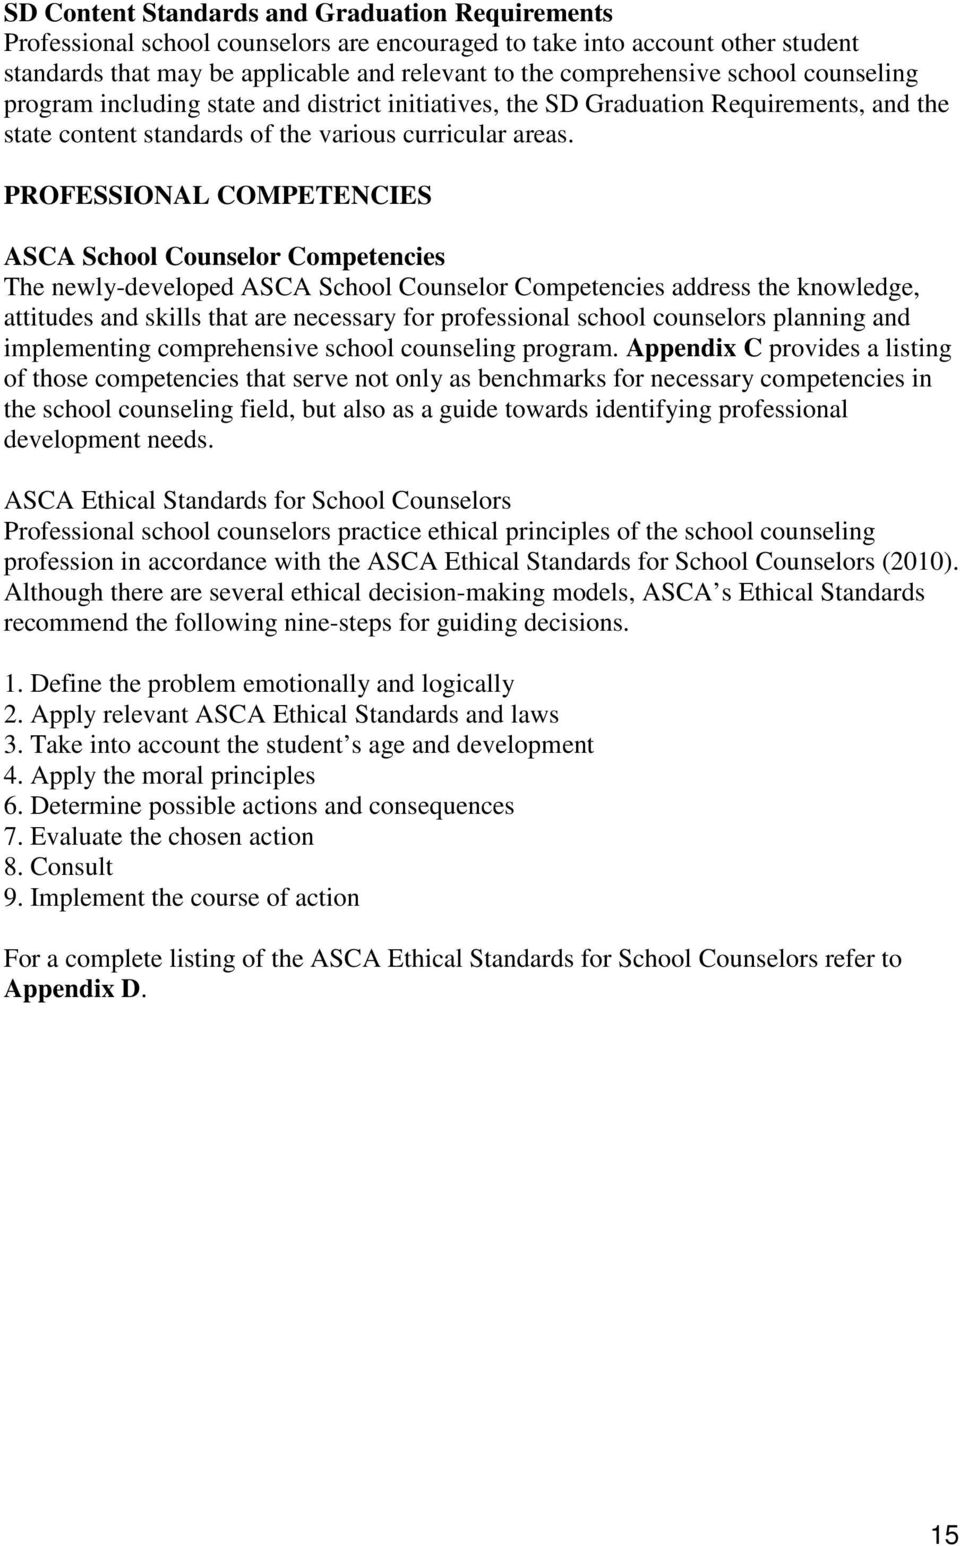 PROFESSIONAL COMPETENCIES ASCA School Counselor Competencies The newly-developed ASCA School Counselor Competencies address the knowledge, attitudes and skills that are necessary for professional